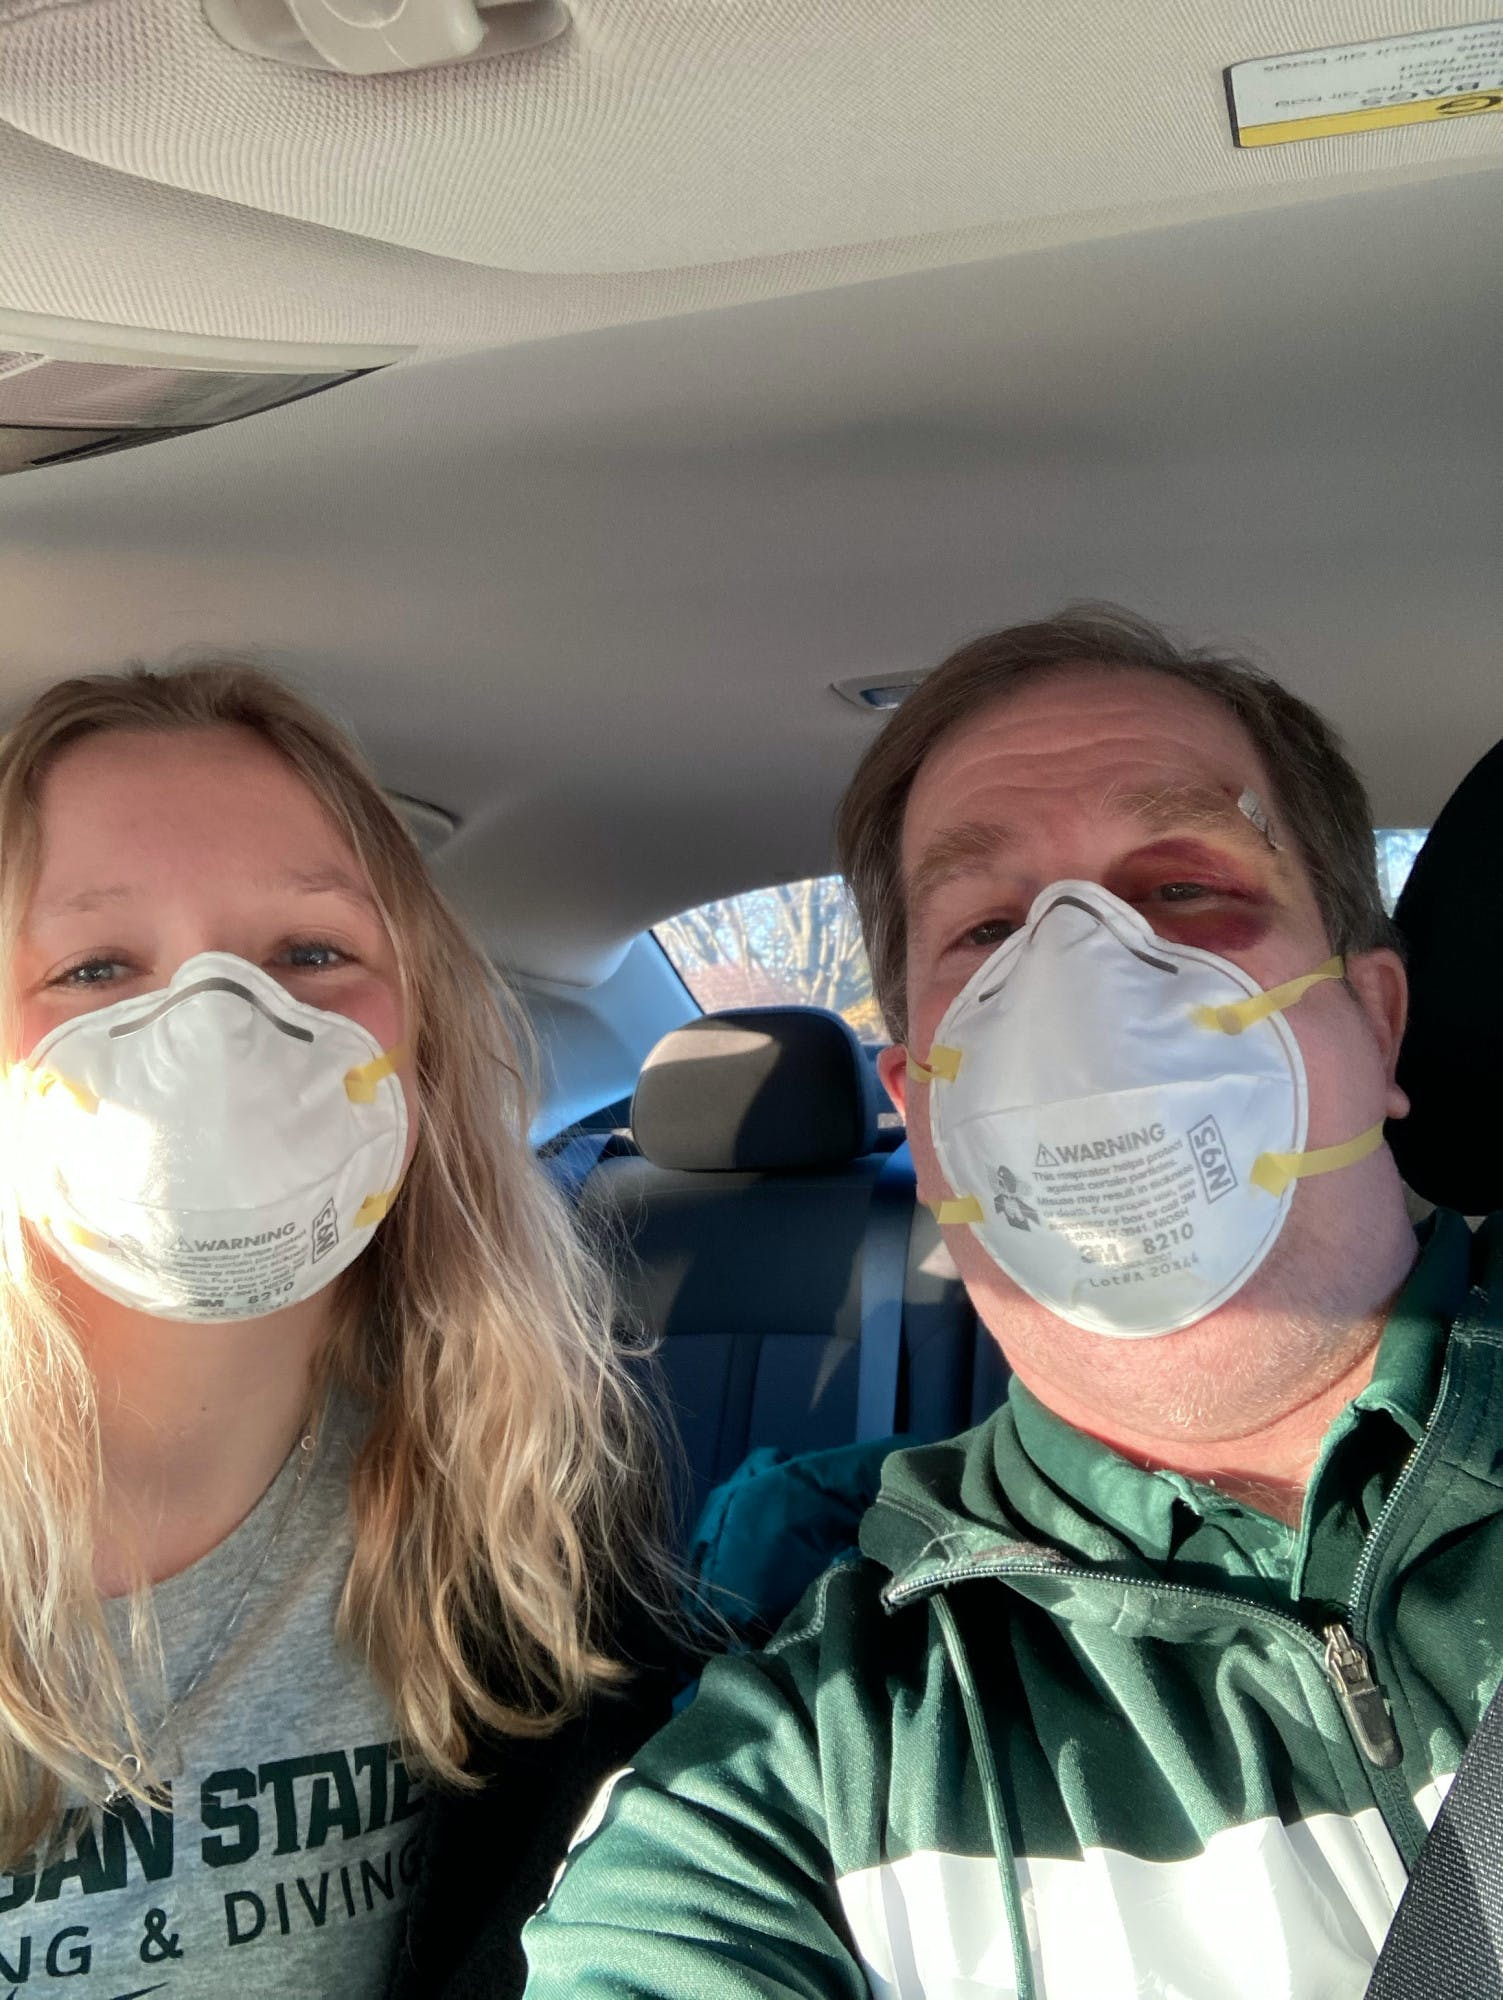 Two people wearing face masks take a selfie while in a car. Both wear Michigan State University clothing.